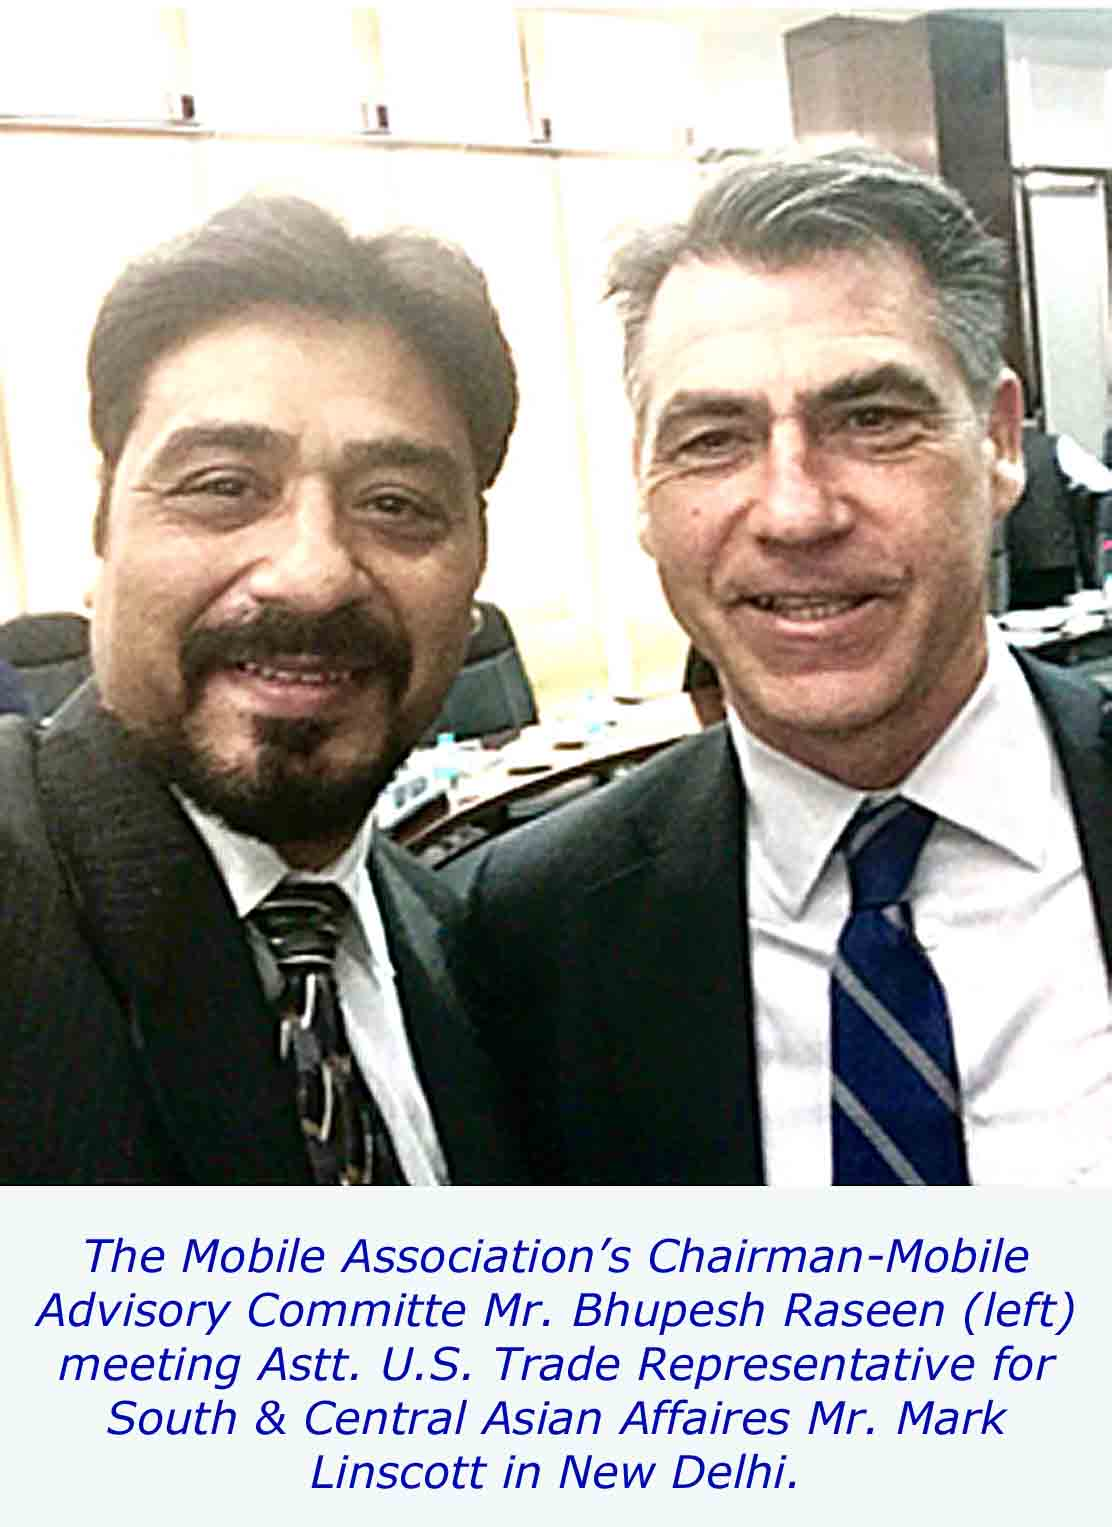 TMA News of The Mobile Association Meeting with the Astt. U.S. Trade Representative for South & Central Asian Affaires Mr. Mark Linscott